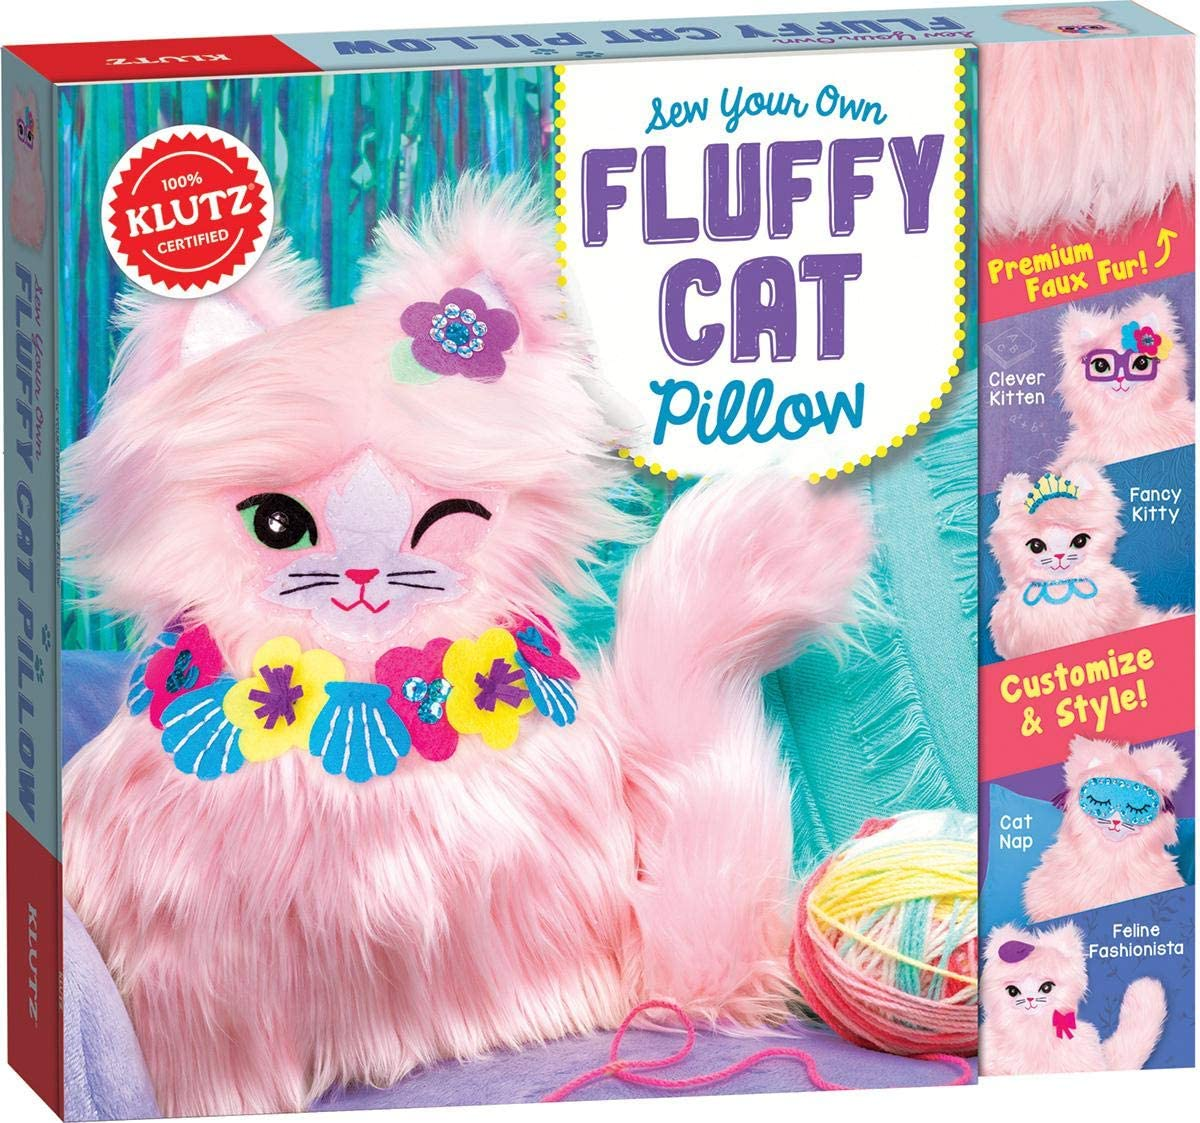 Fluffy Cat Pillow Sew Your Own